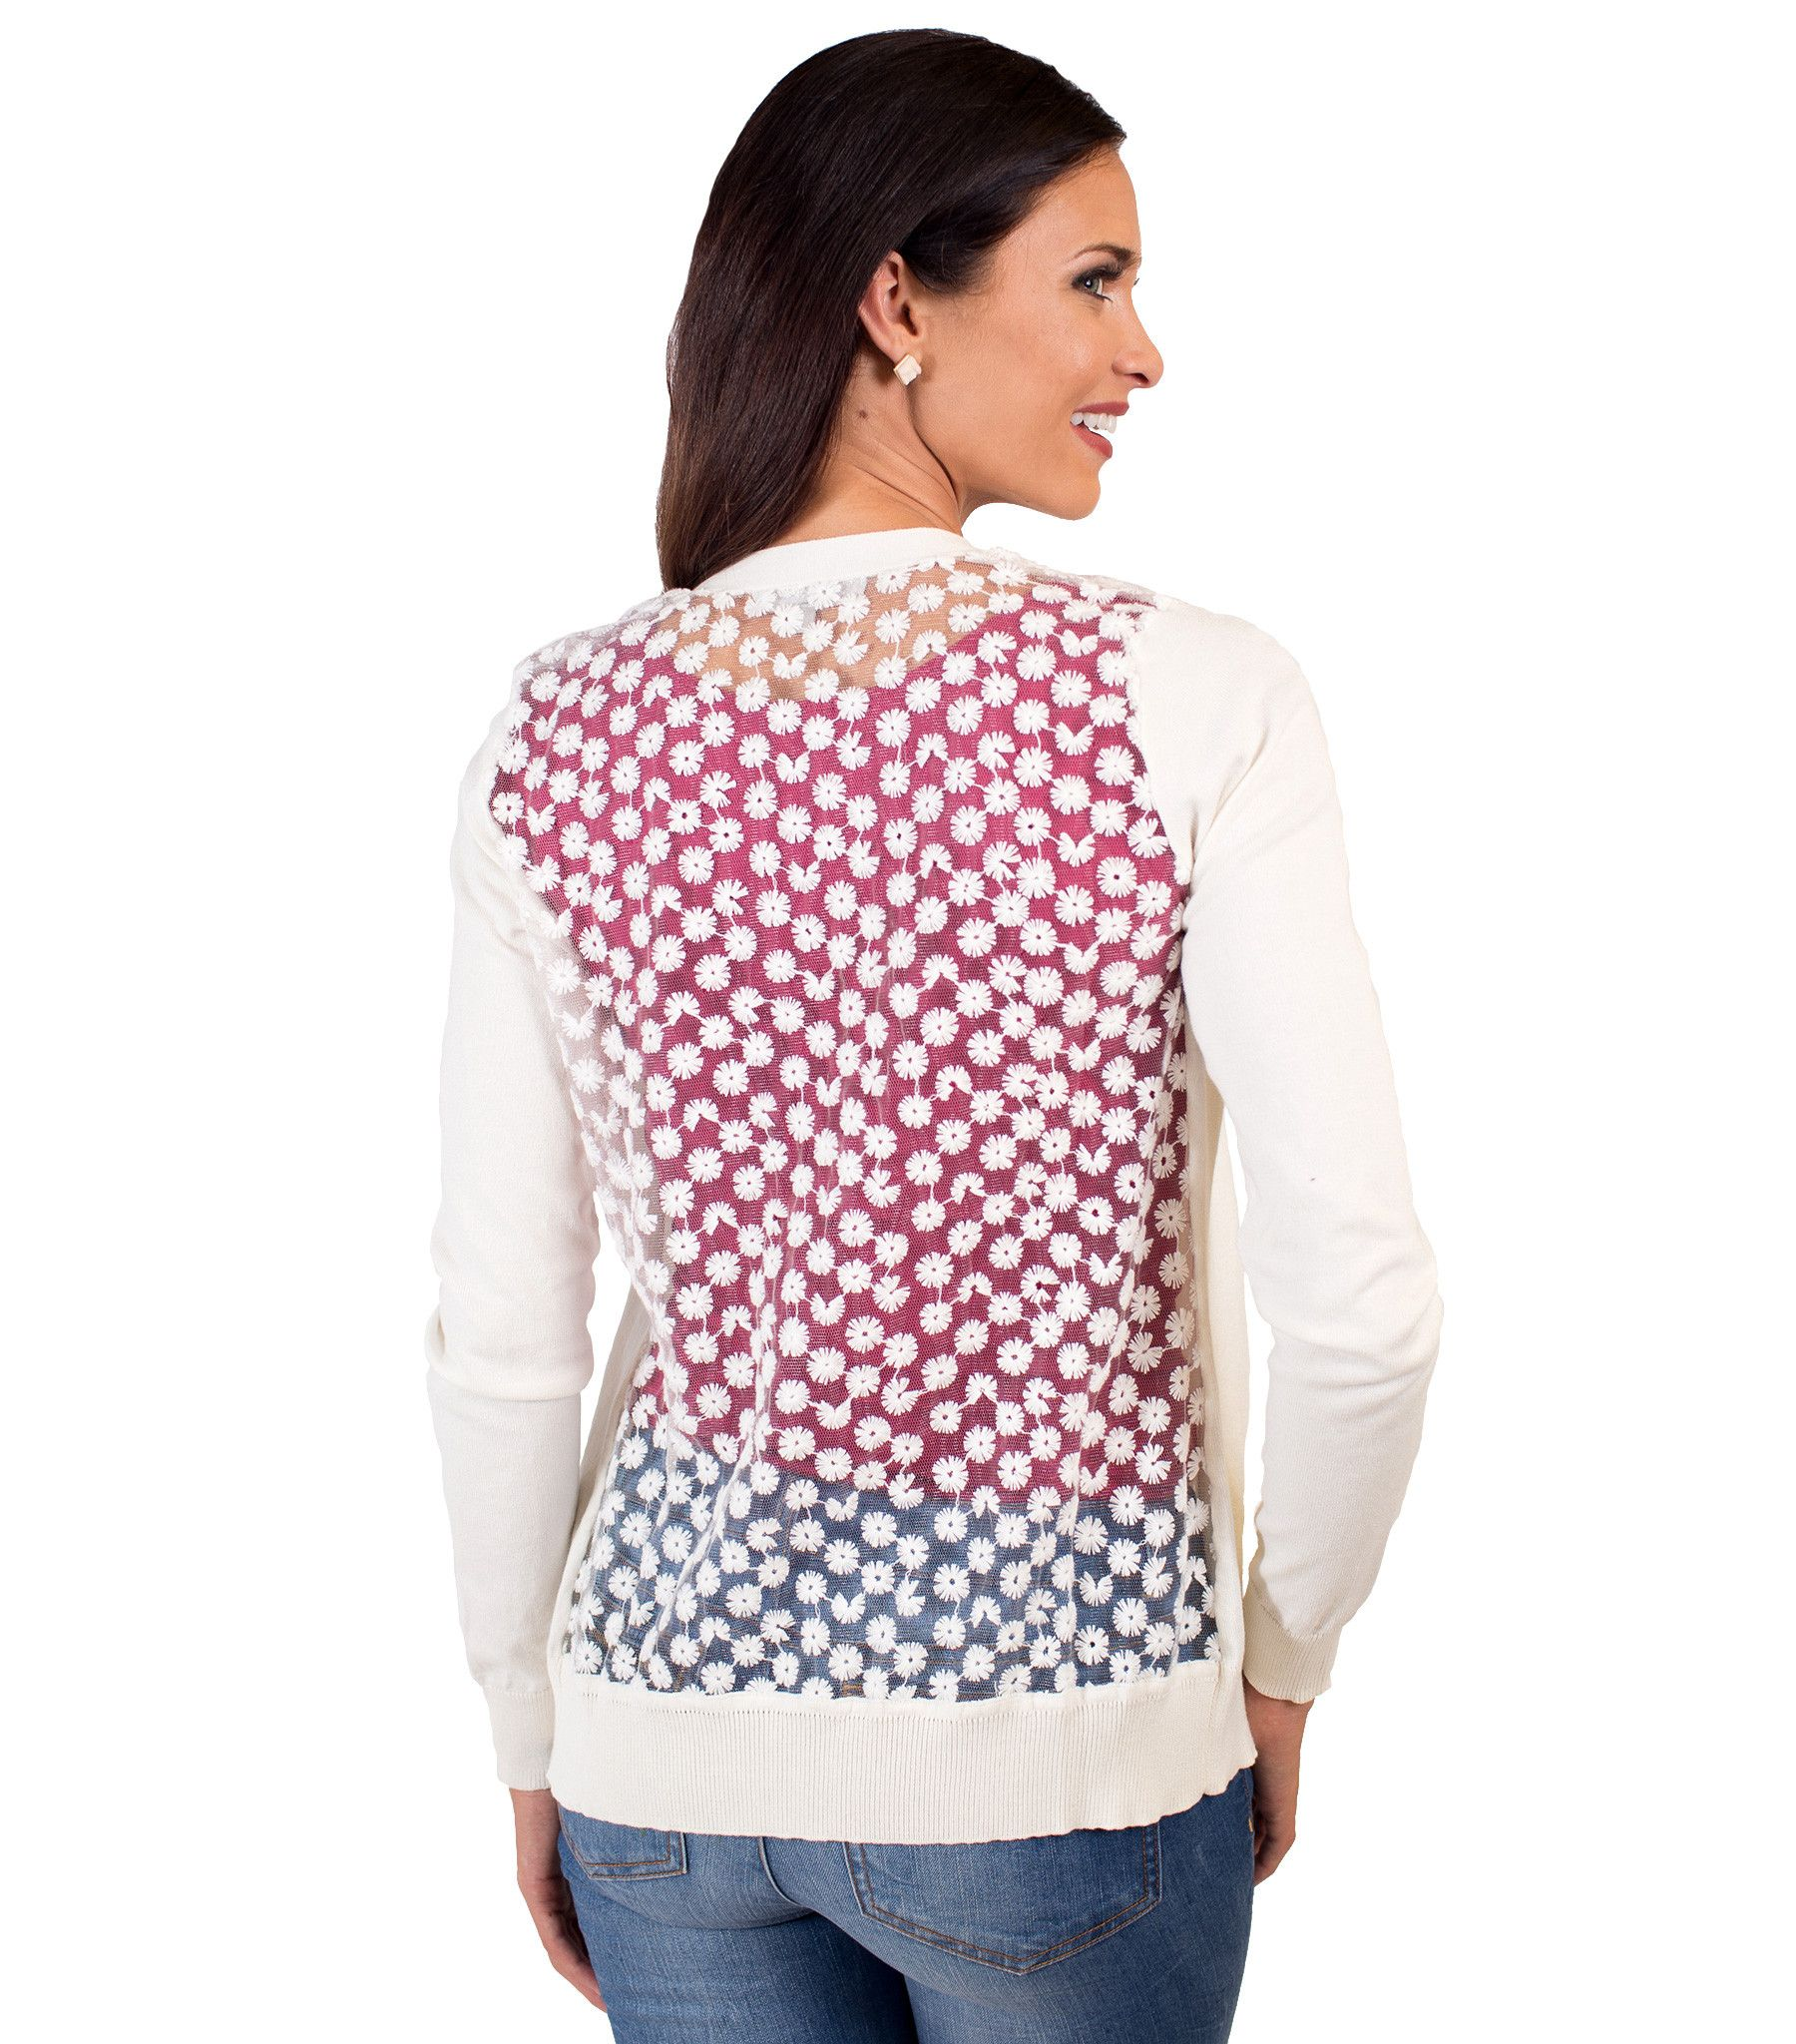 Classic Cardigan - Floral Embroidered Mesh Back – DOWNEAST